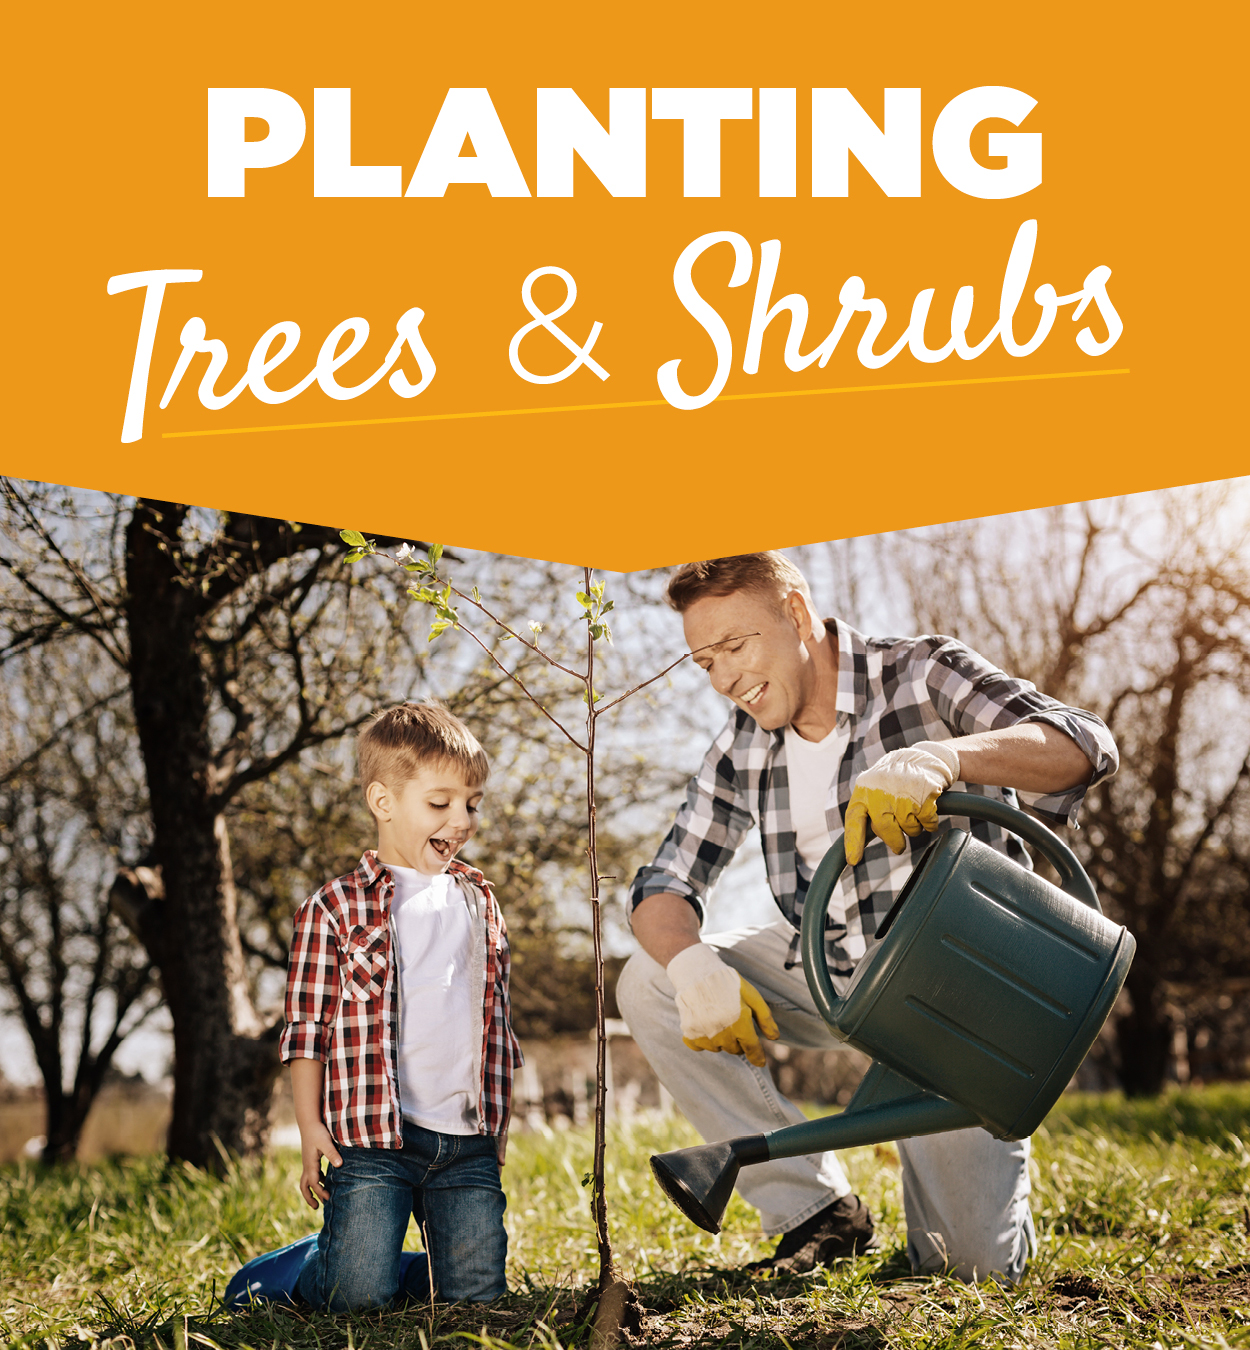 Planting Trees & Shrubs